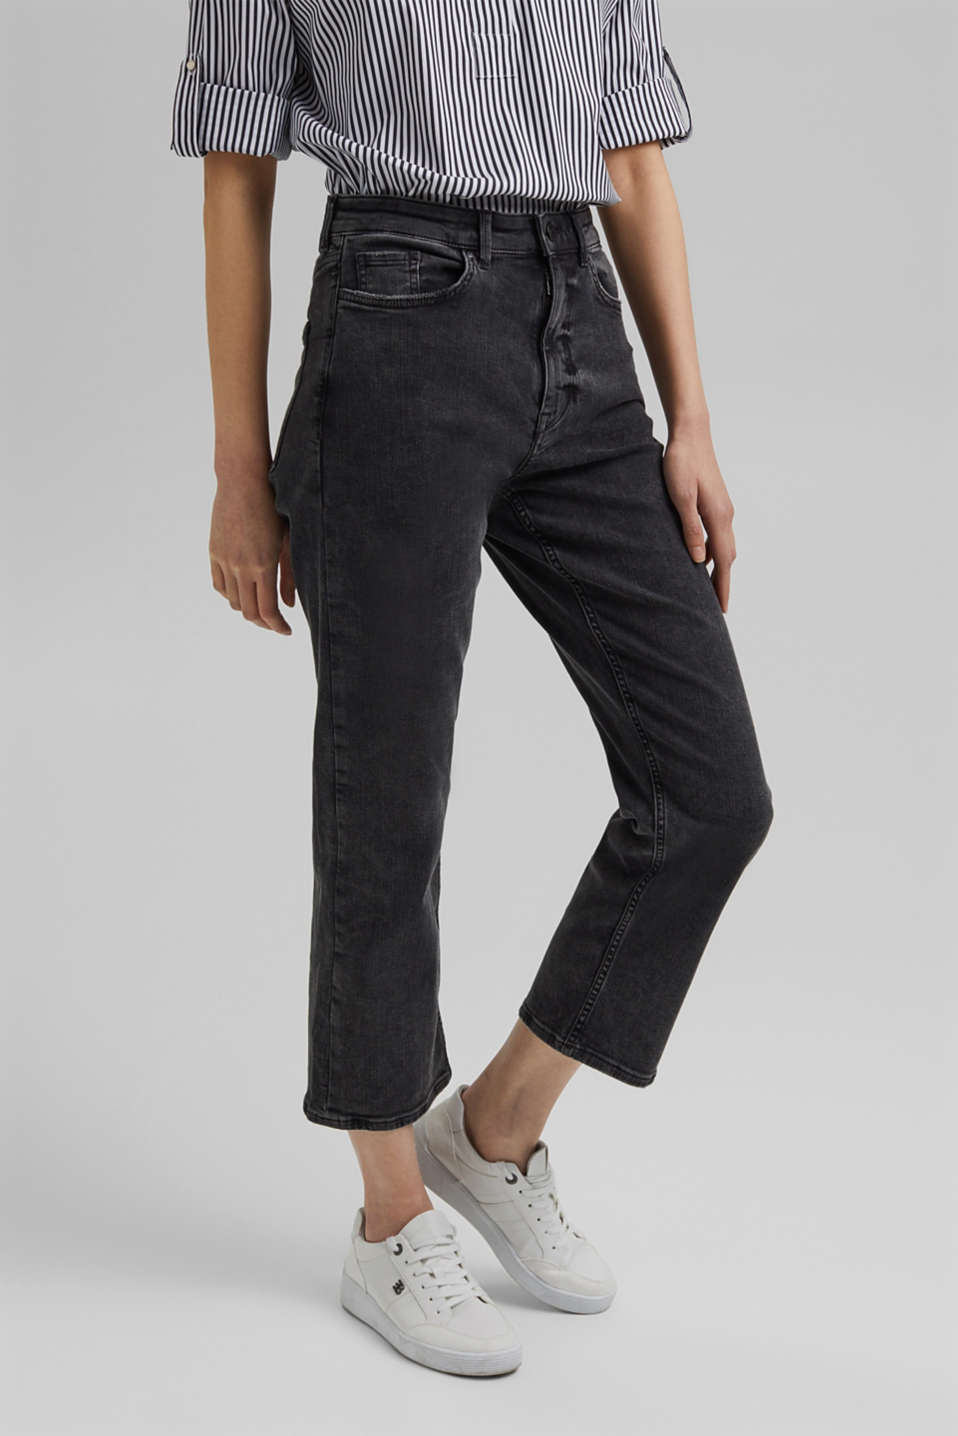 Esprit - Stumpede high rise-jeans med stretch